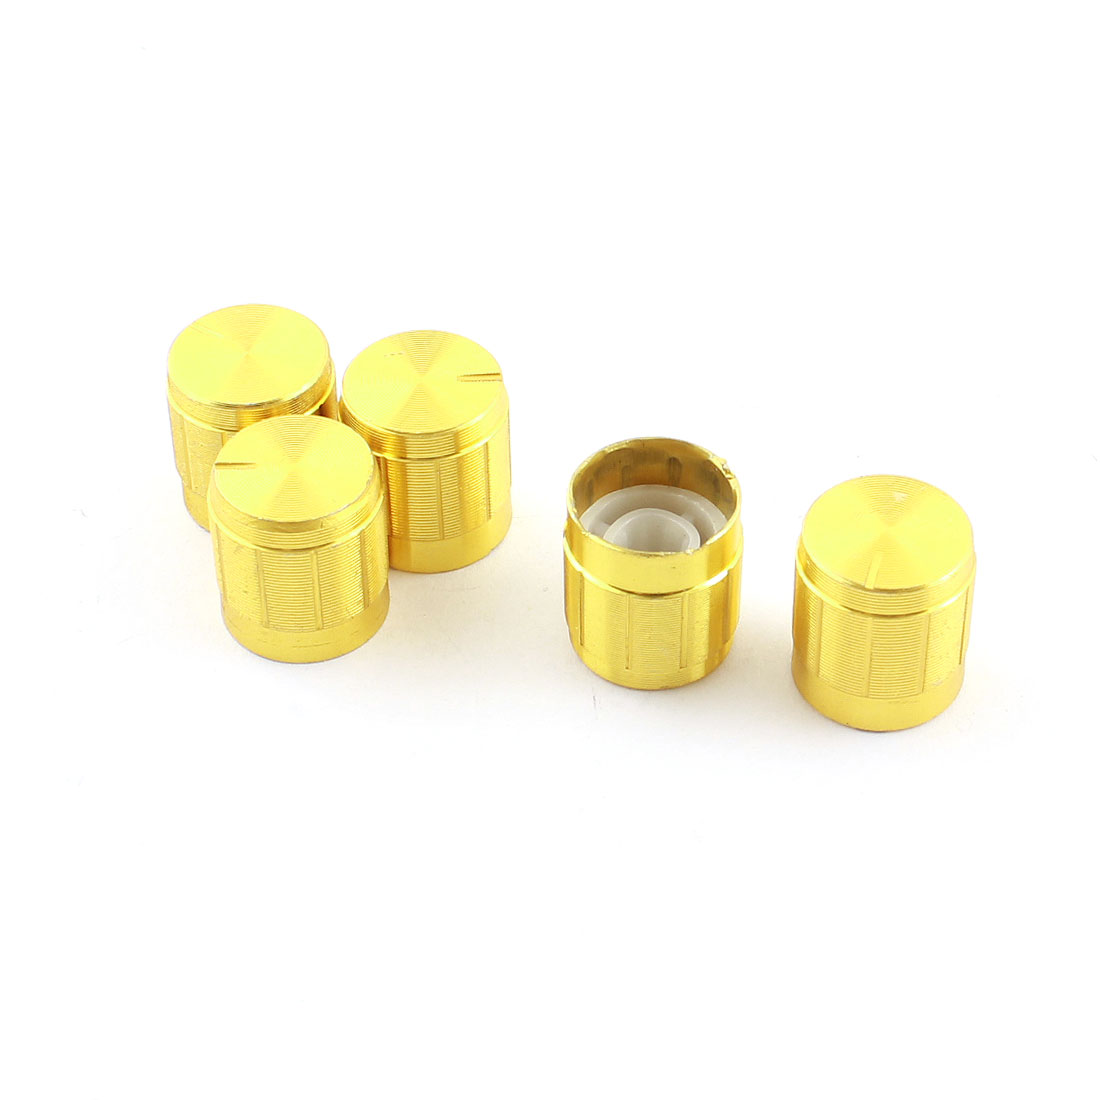 5 Pcs Gold Tone Volume Control Rotary Aluminum Potentiometer Knobs 14mm x 15mm